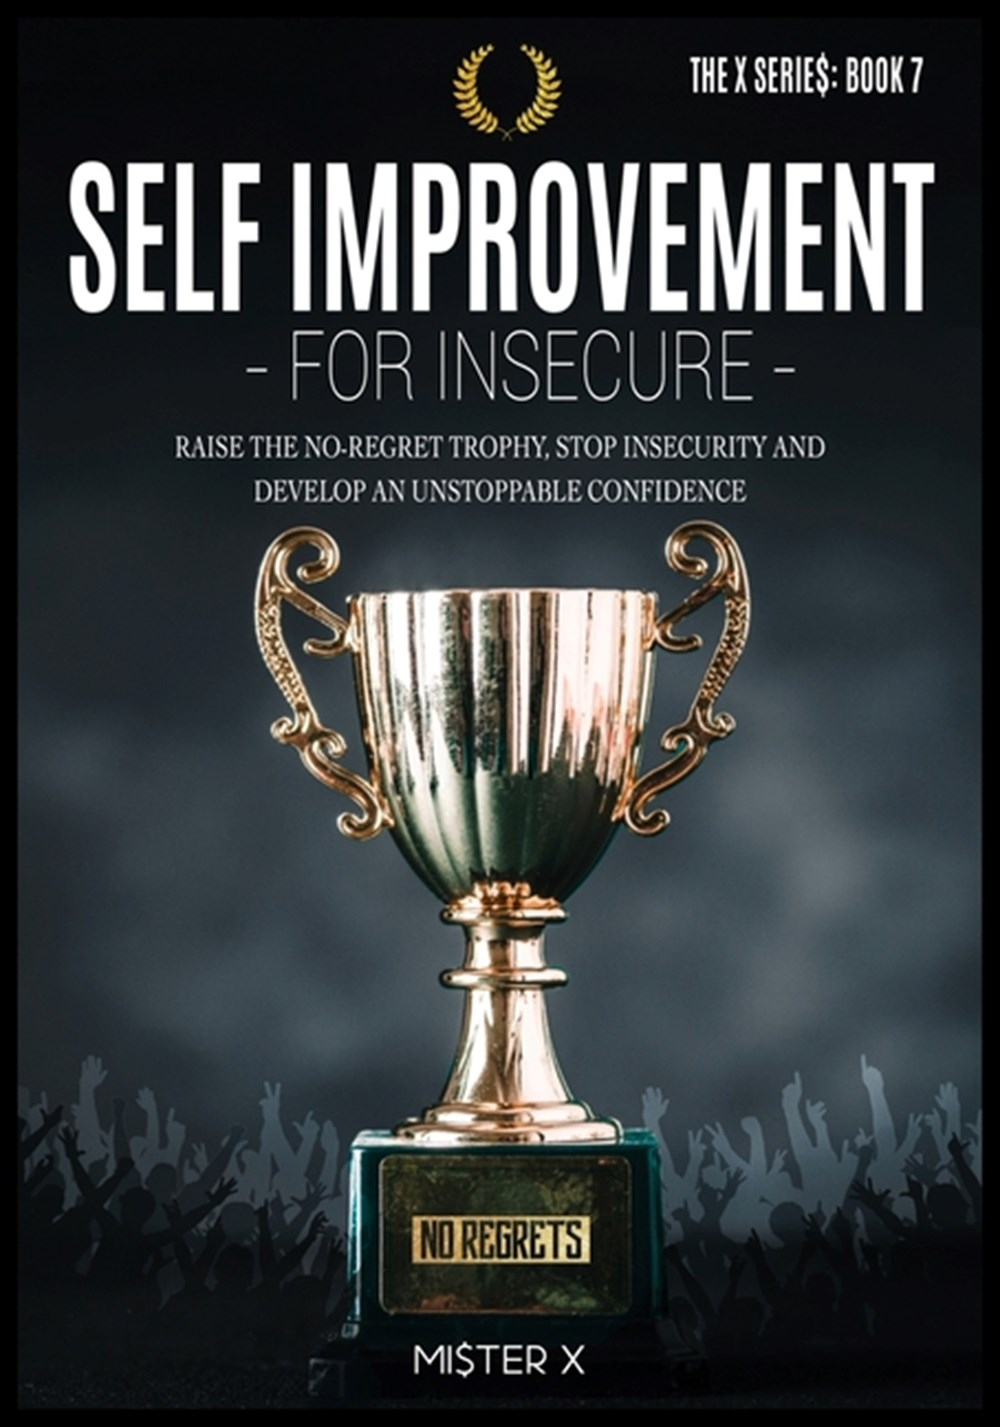 Self Improvement for Insecure Raise the No-Regret Trophy, Stop Insecurity and Develop an Unstoppable